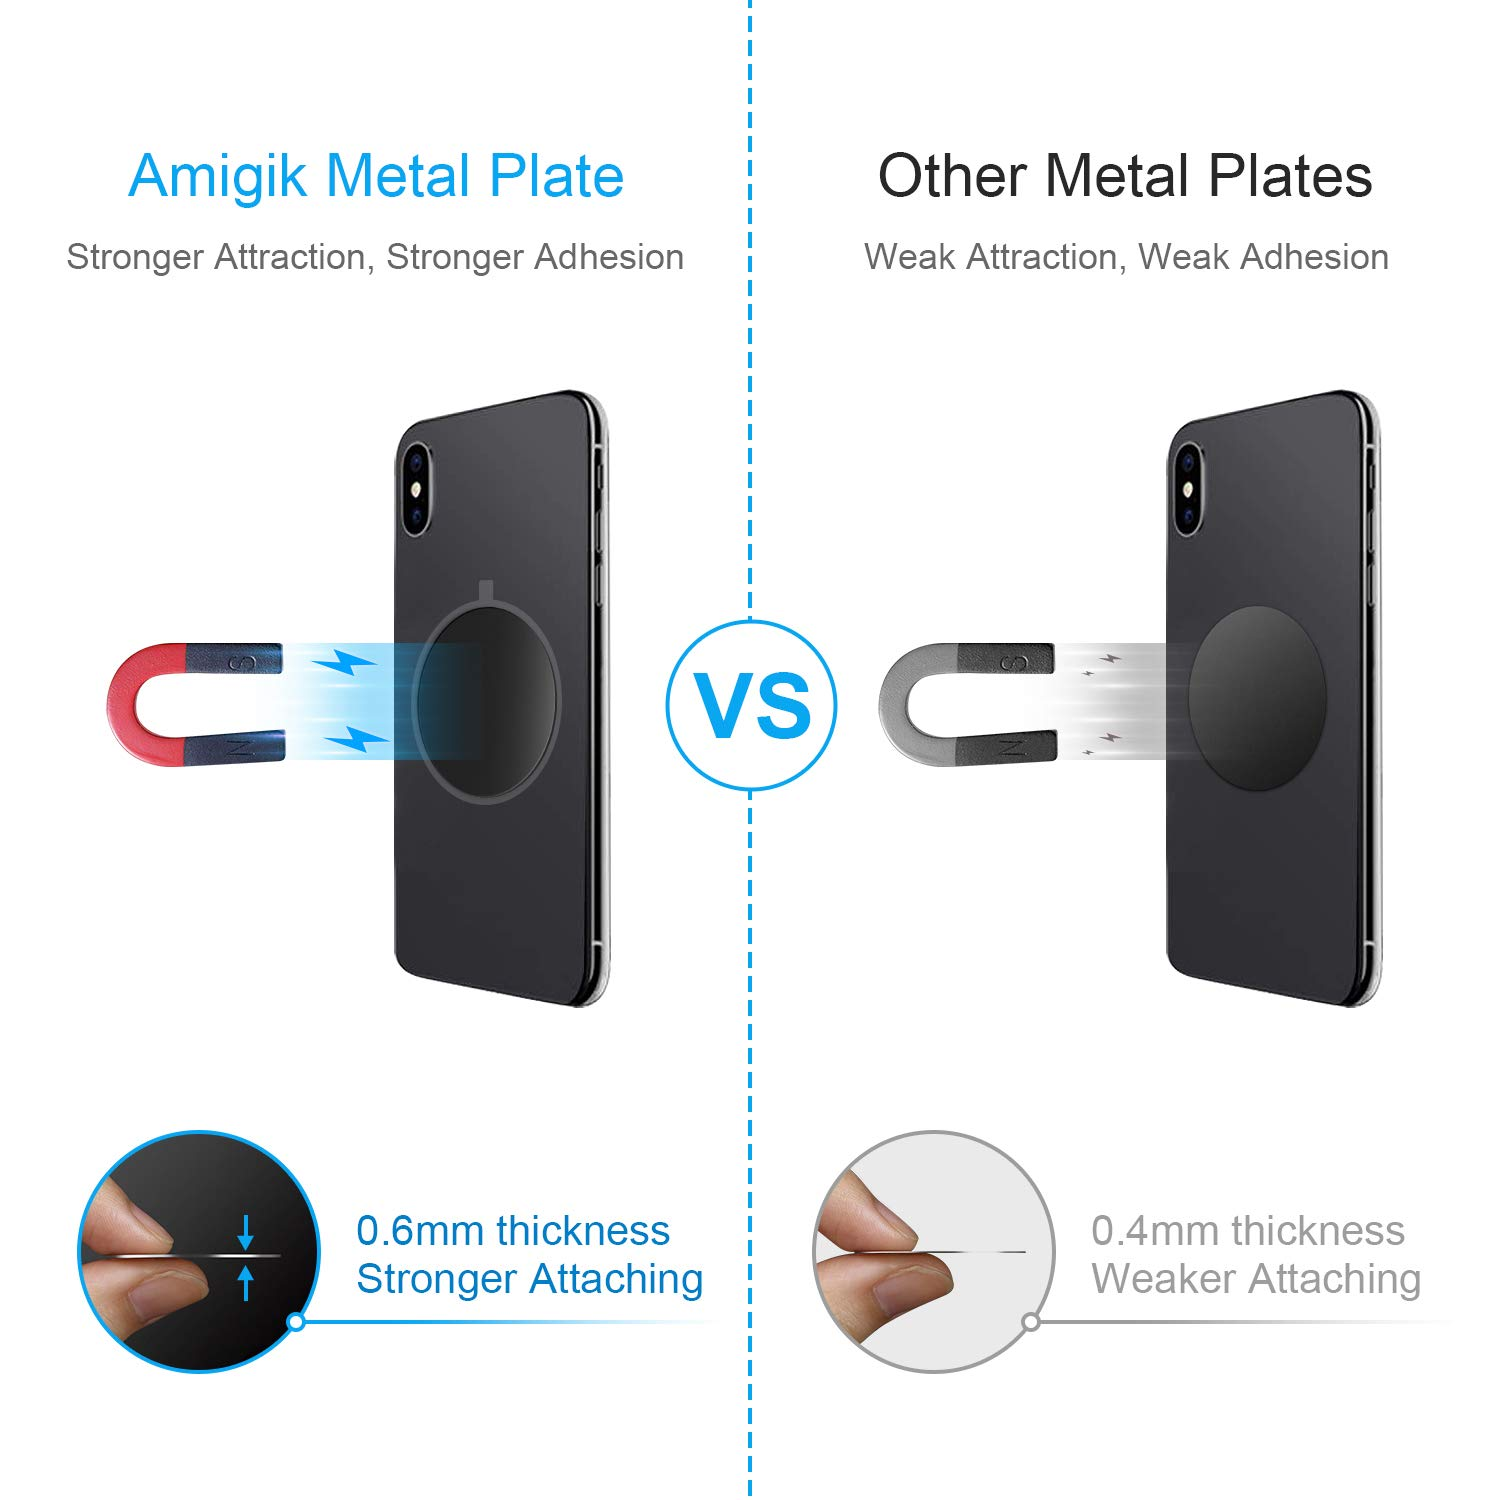 AMIGIK 10 Pack Replacement Mount Metal Plate for Magnetic Phone Holder, Ultra Thin Mental Stickers with Adhesive for Magnet Car Mount Cradle (6 Round & 4 Rectangular)